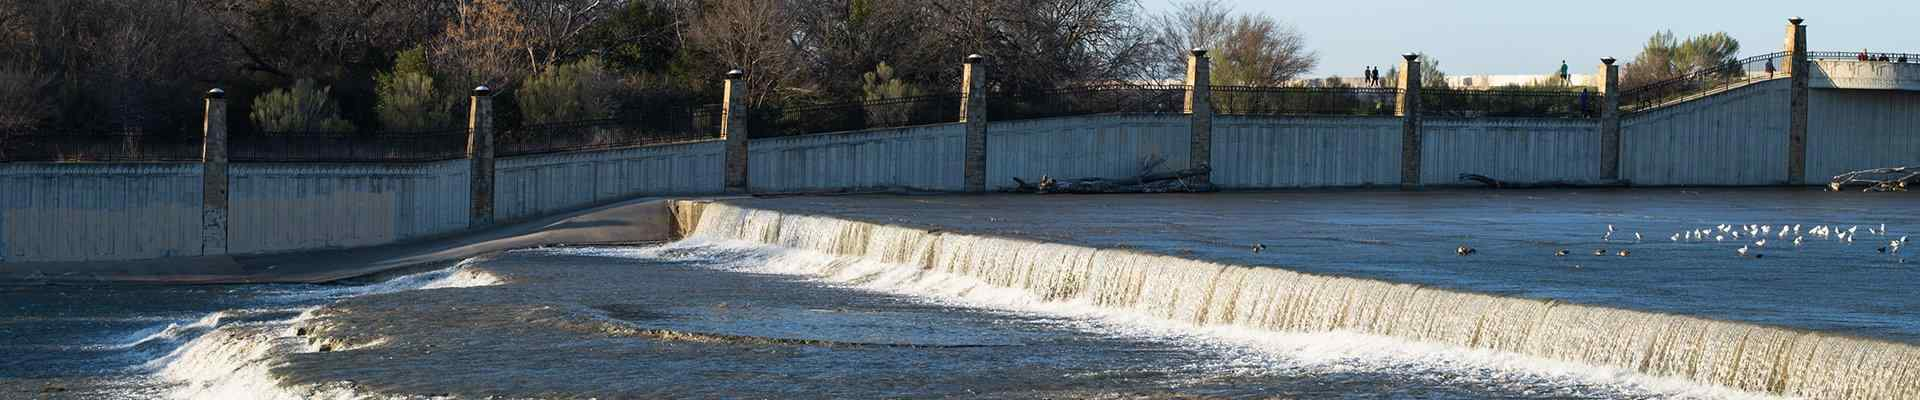 a view of a waterway in garland texas